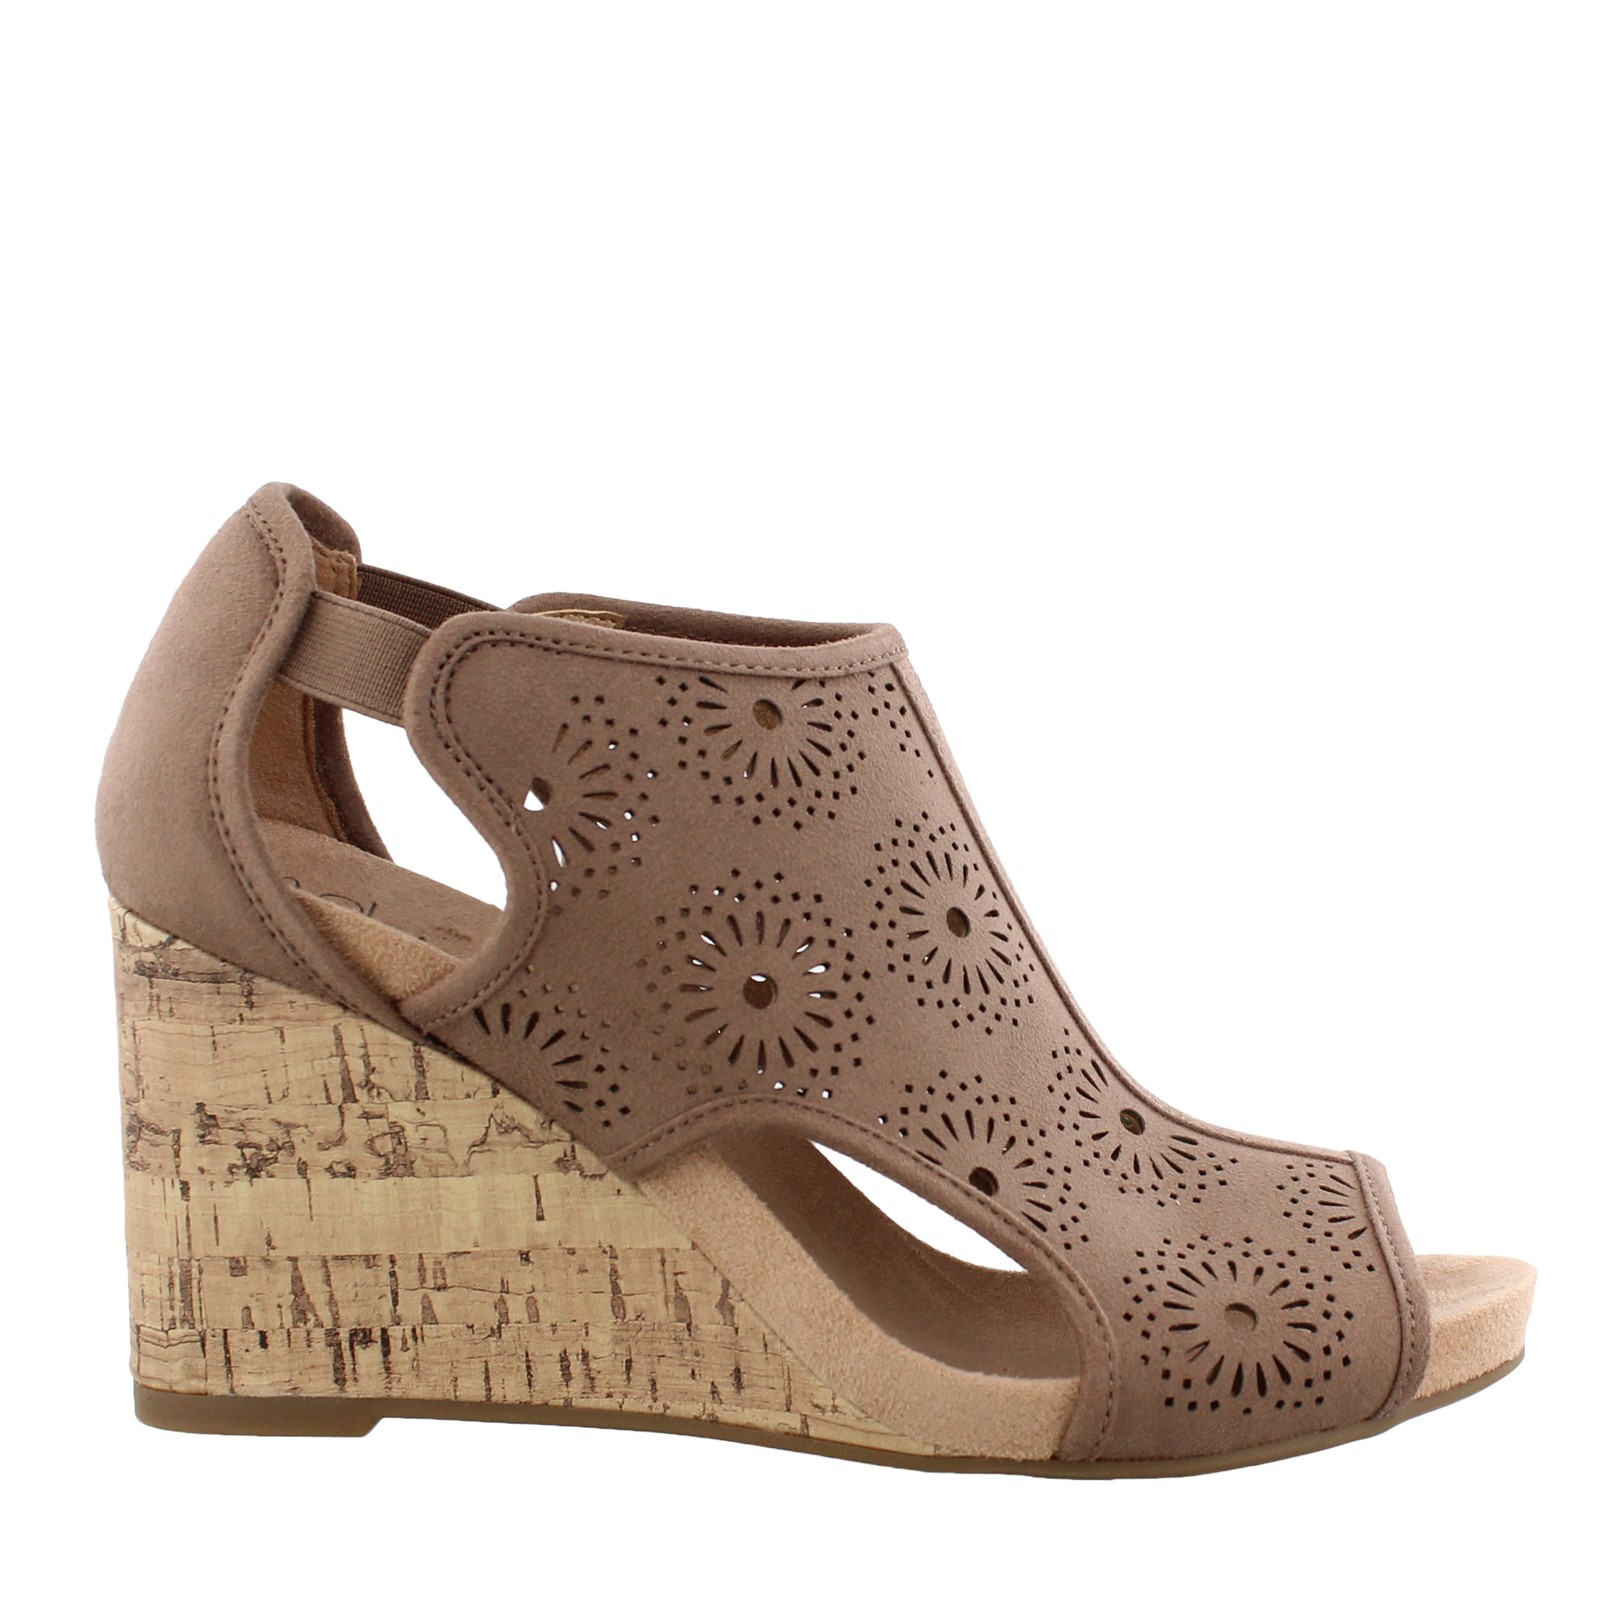 Women's Lifestride, Hinx High Heel Wedge Sandals